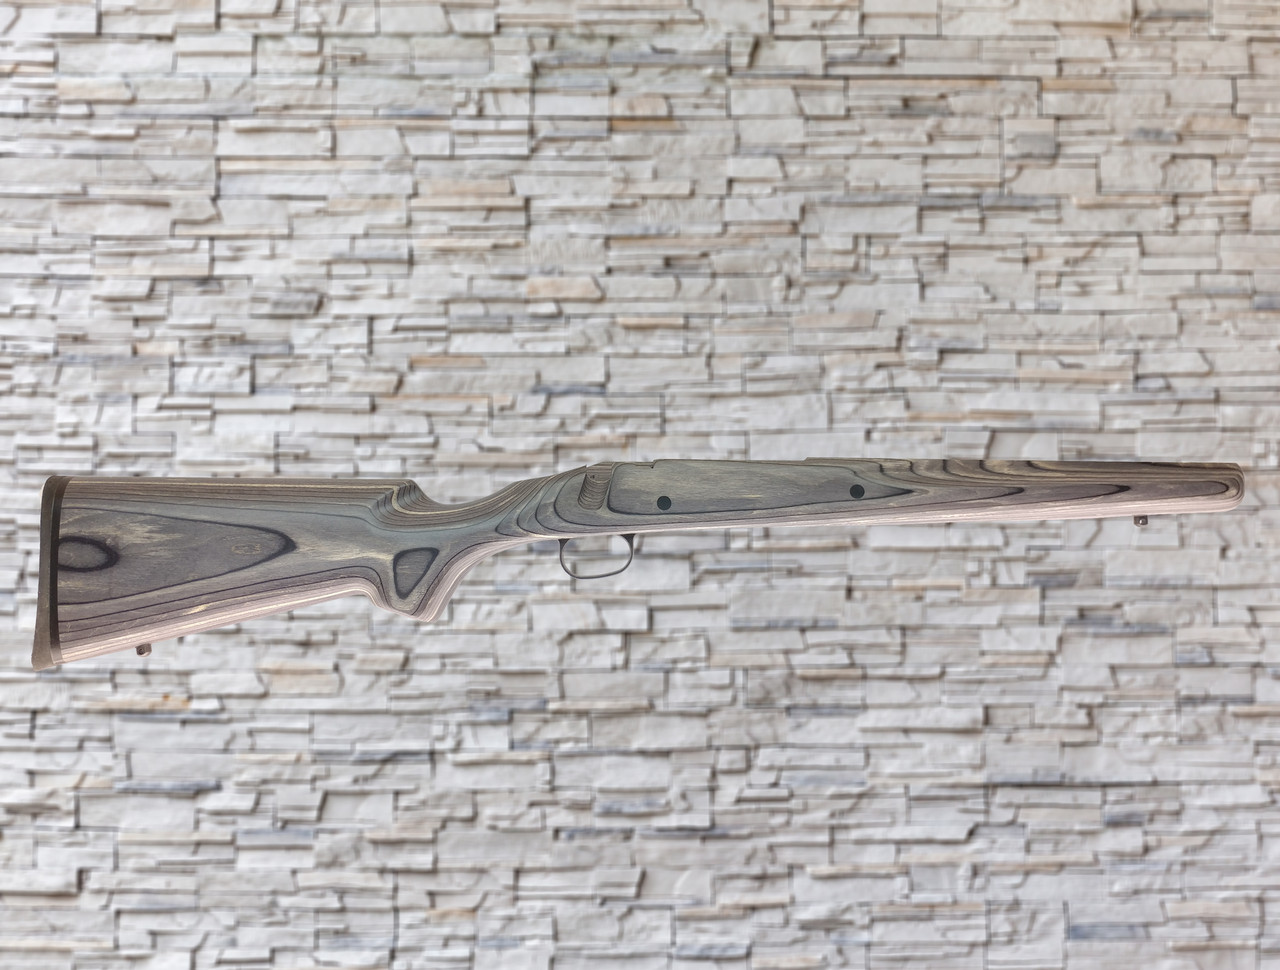 Boyds Classic Wood Stock Gray for Savage AXIS Short Action Tapered Barrel Rifle